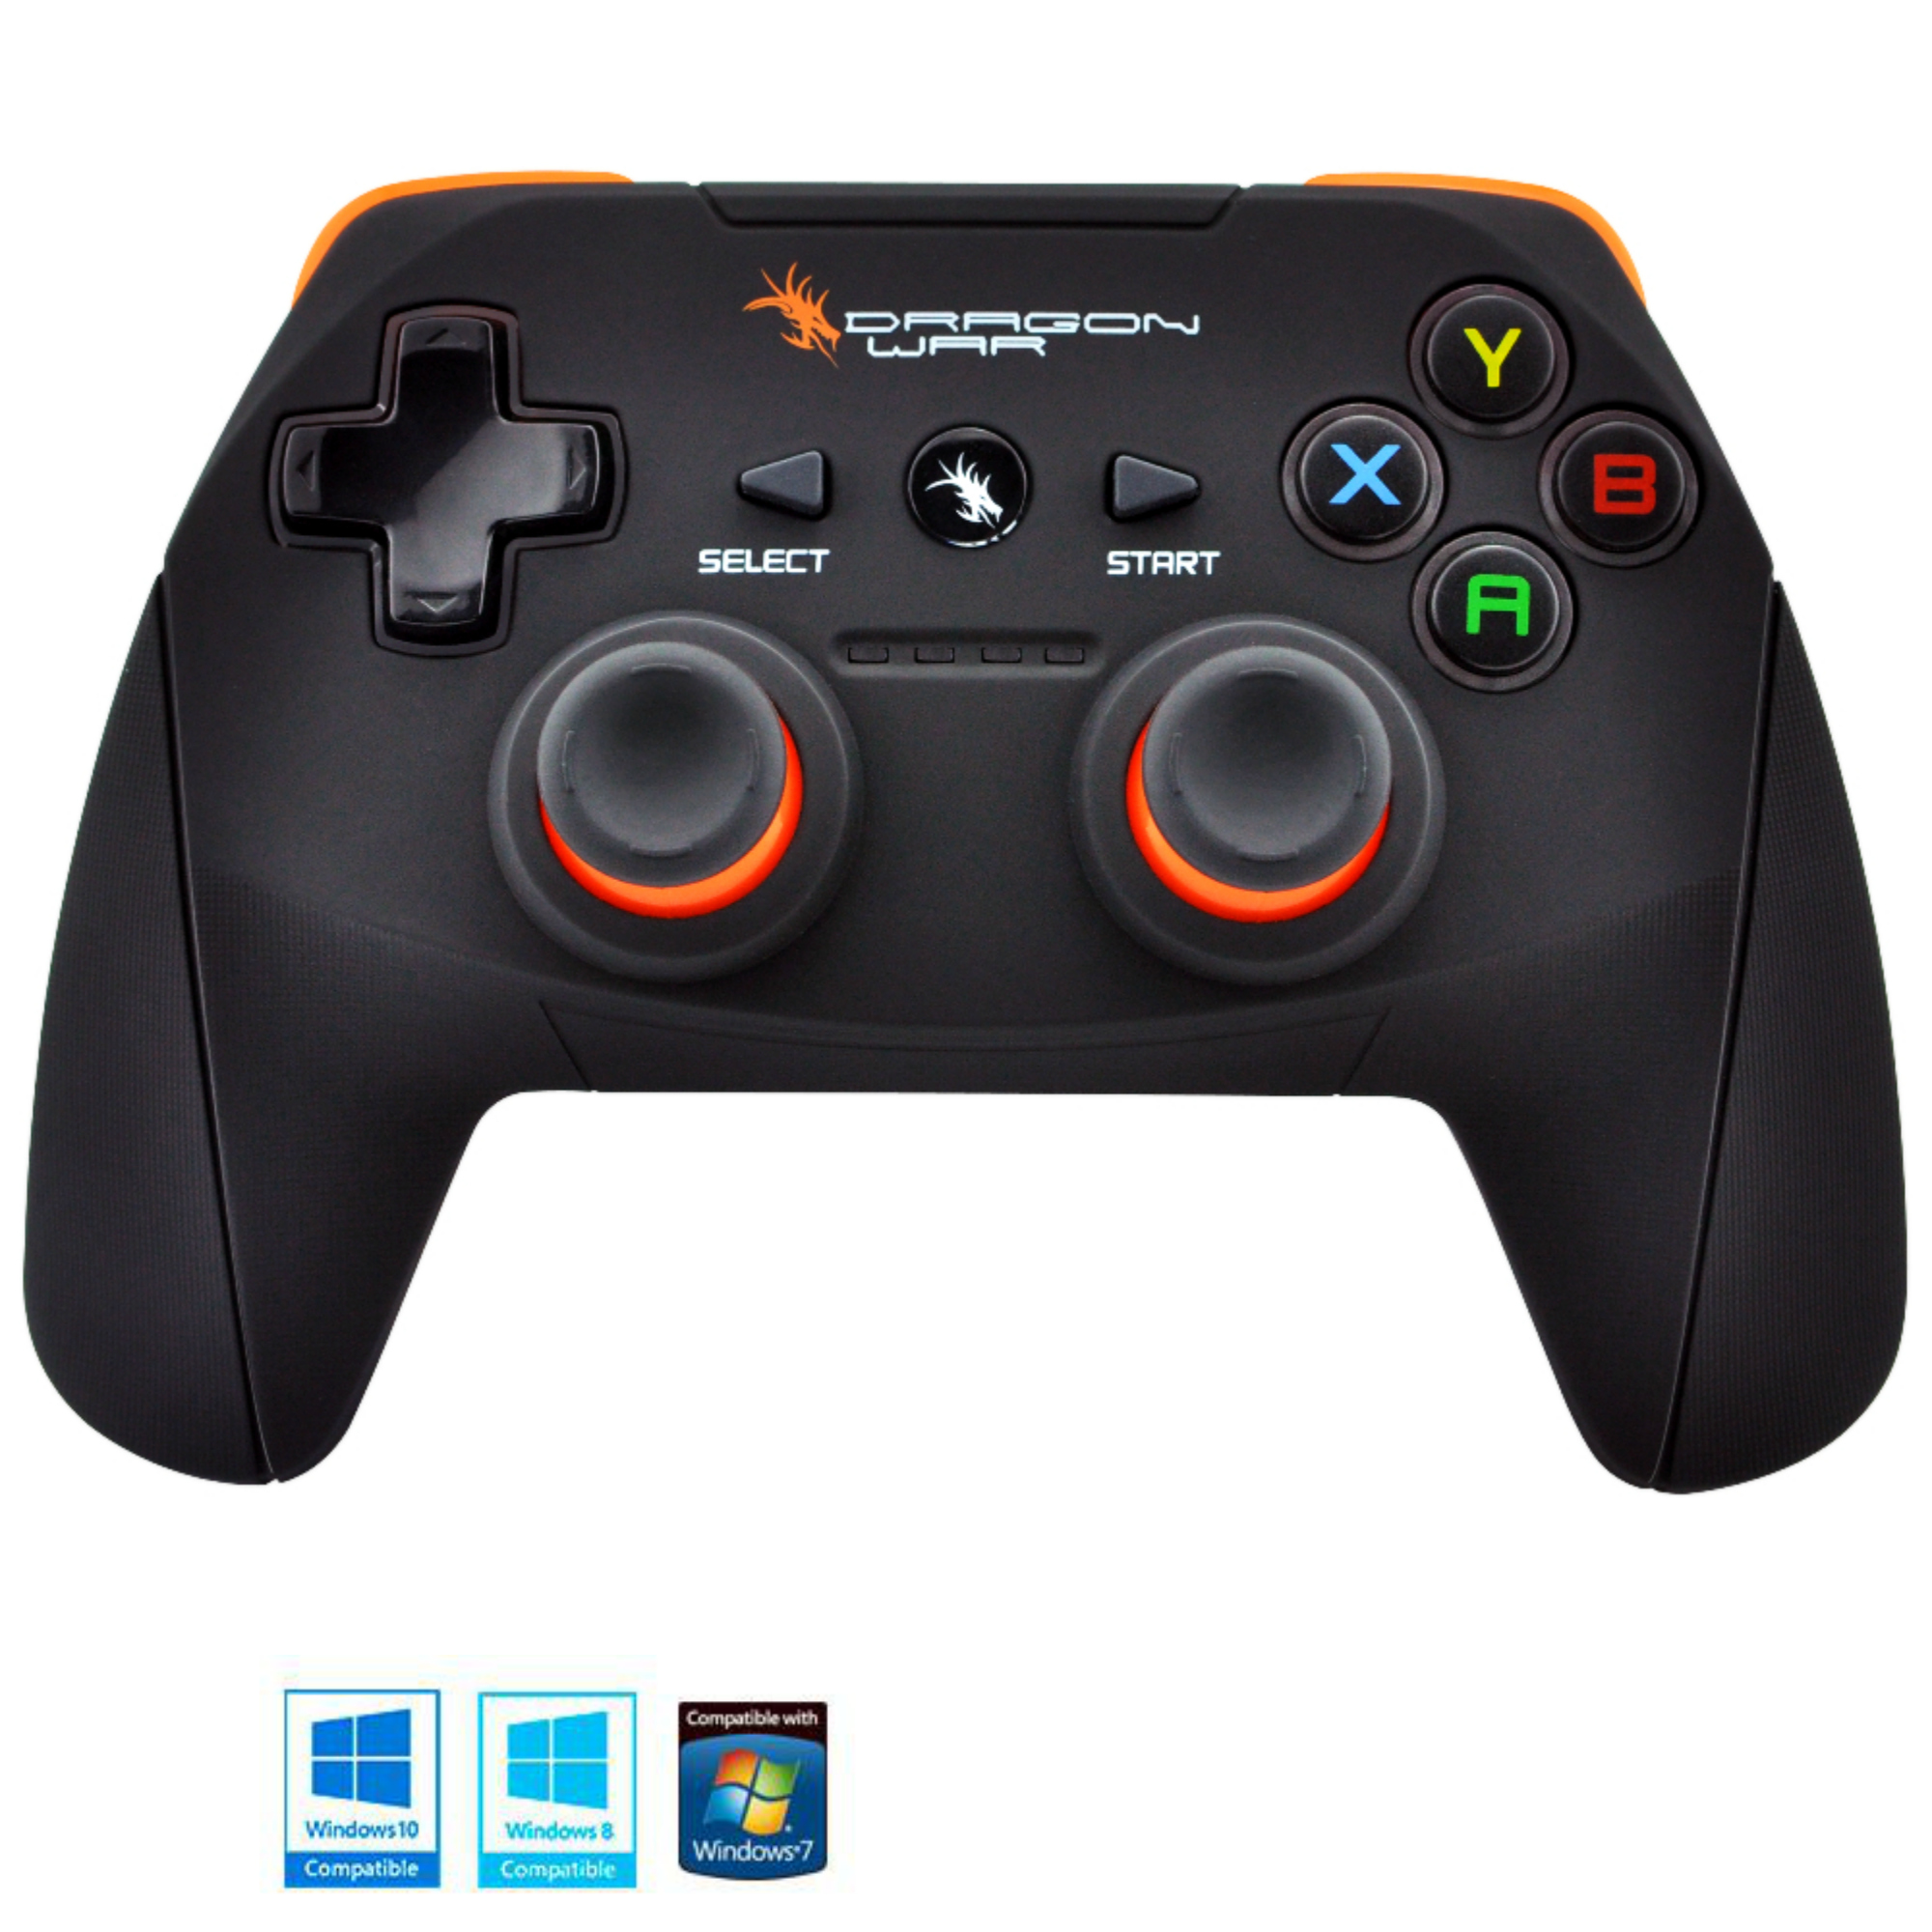 Dragonwar Shock Ultimate 17 Key Wireless Computer Game Controller Gamepad with Full Vibration For PC, Compatible with Windows 10